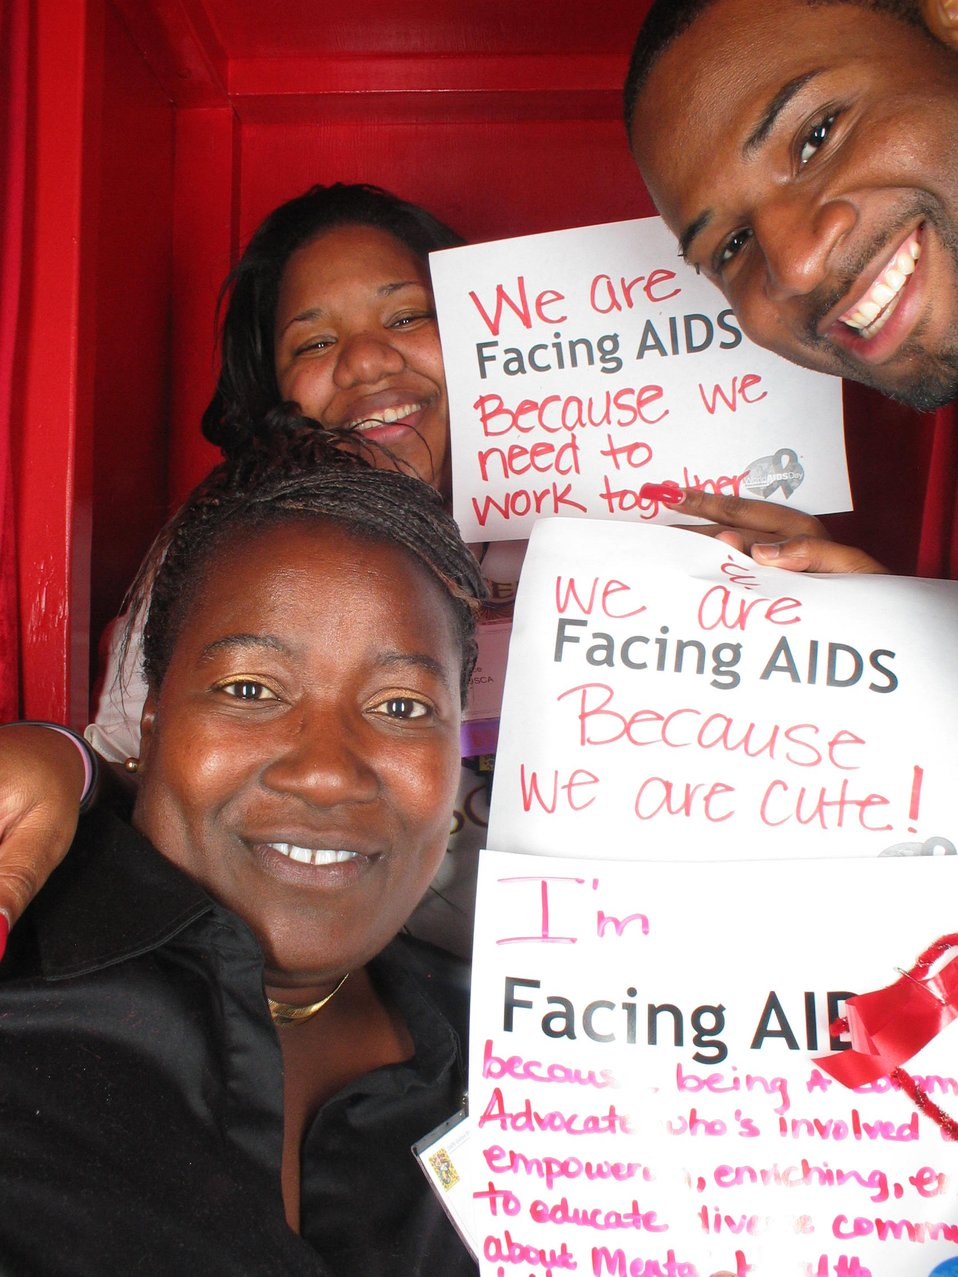 We are Facing AIDS because we need to work together. We are Facing AIDS because we are cute!